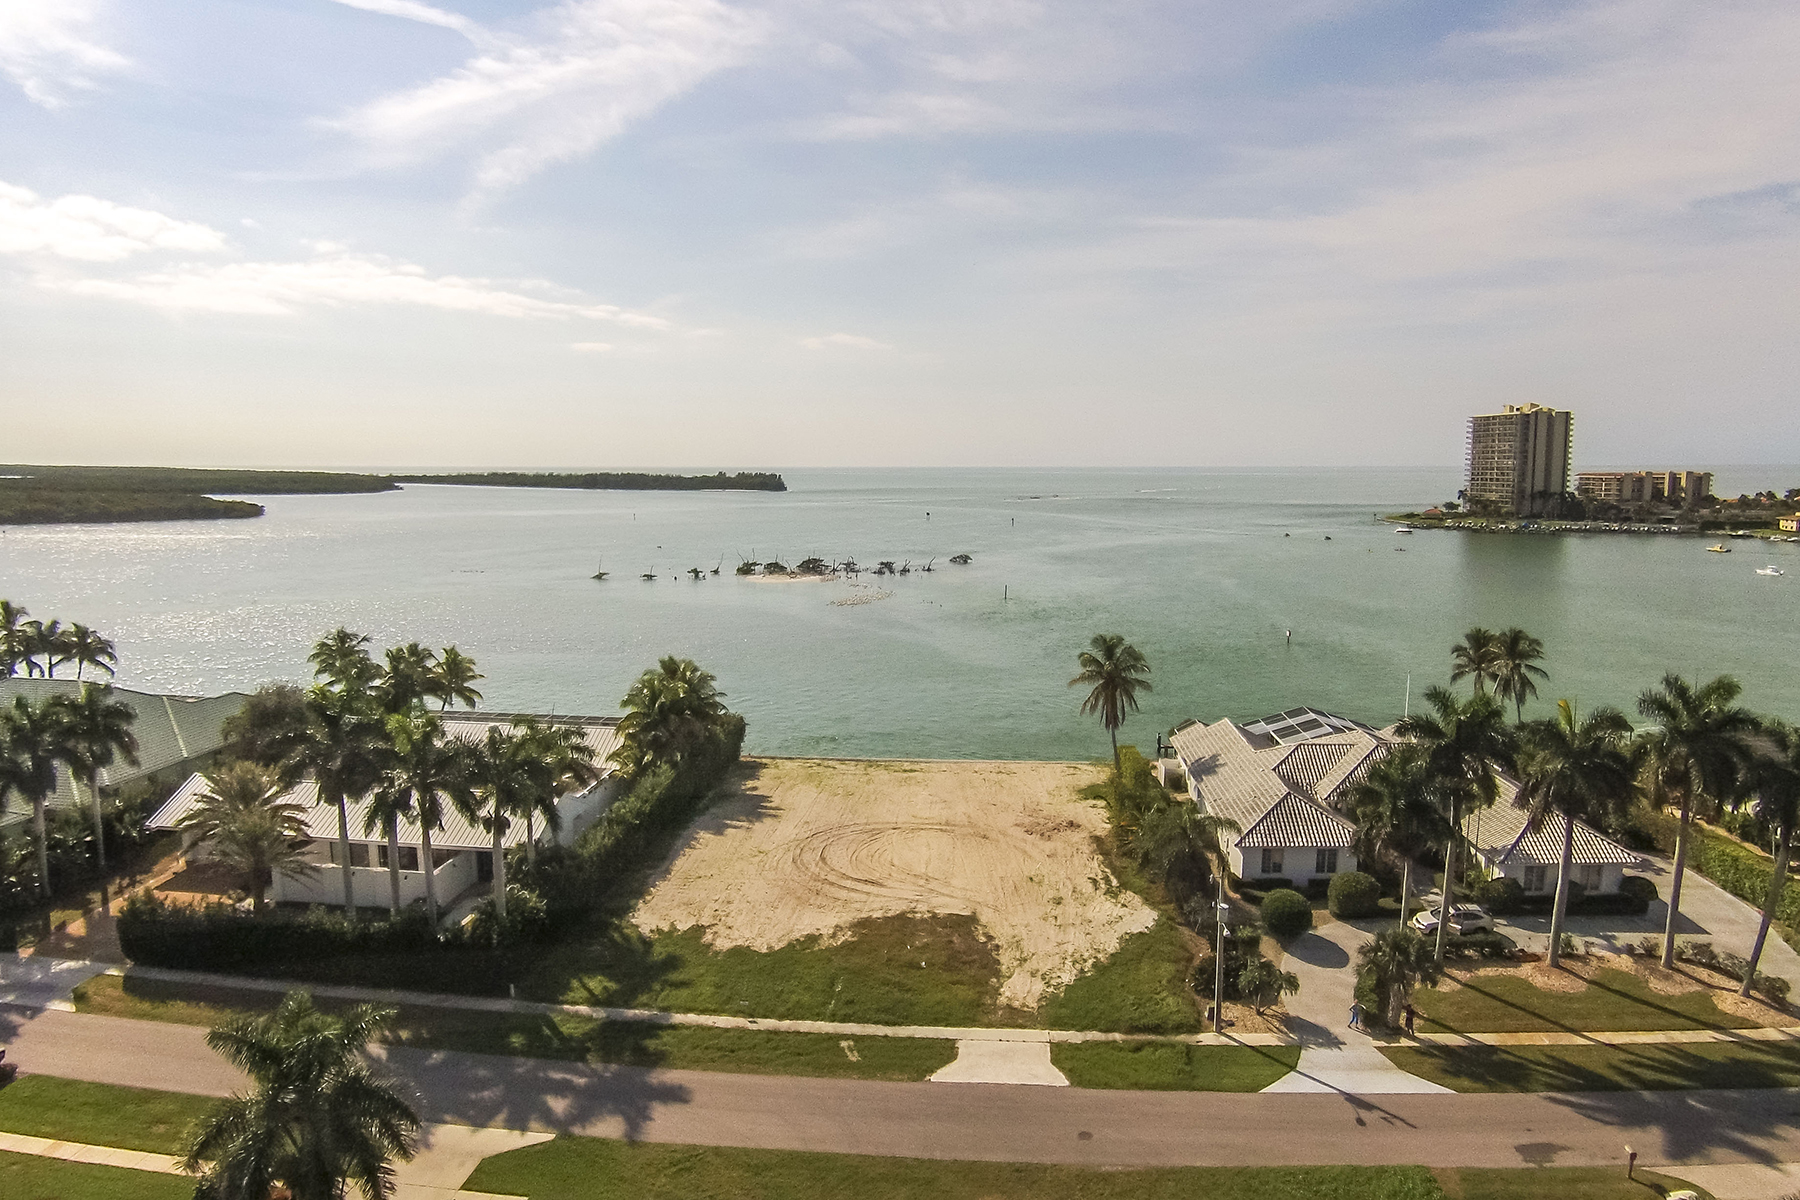 Land for Sale at MARCO ISLAND 1381 Caxambas Ct, Marco Island, Florida 34145 United States